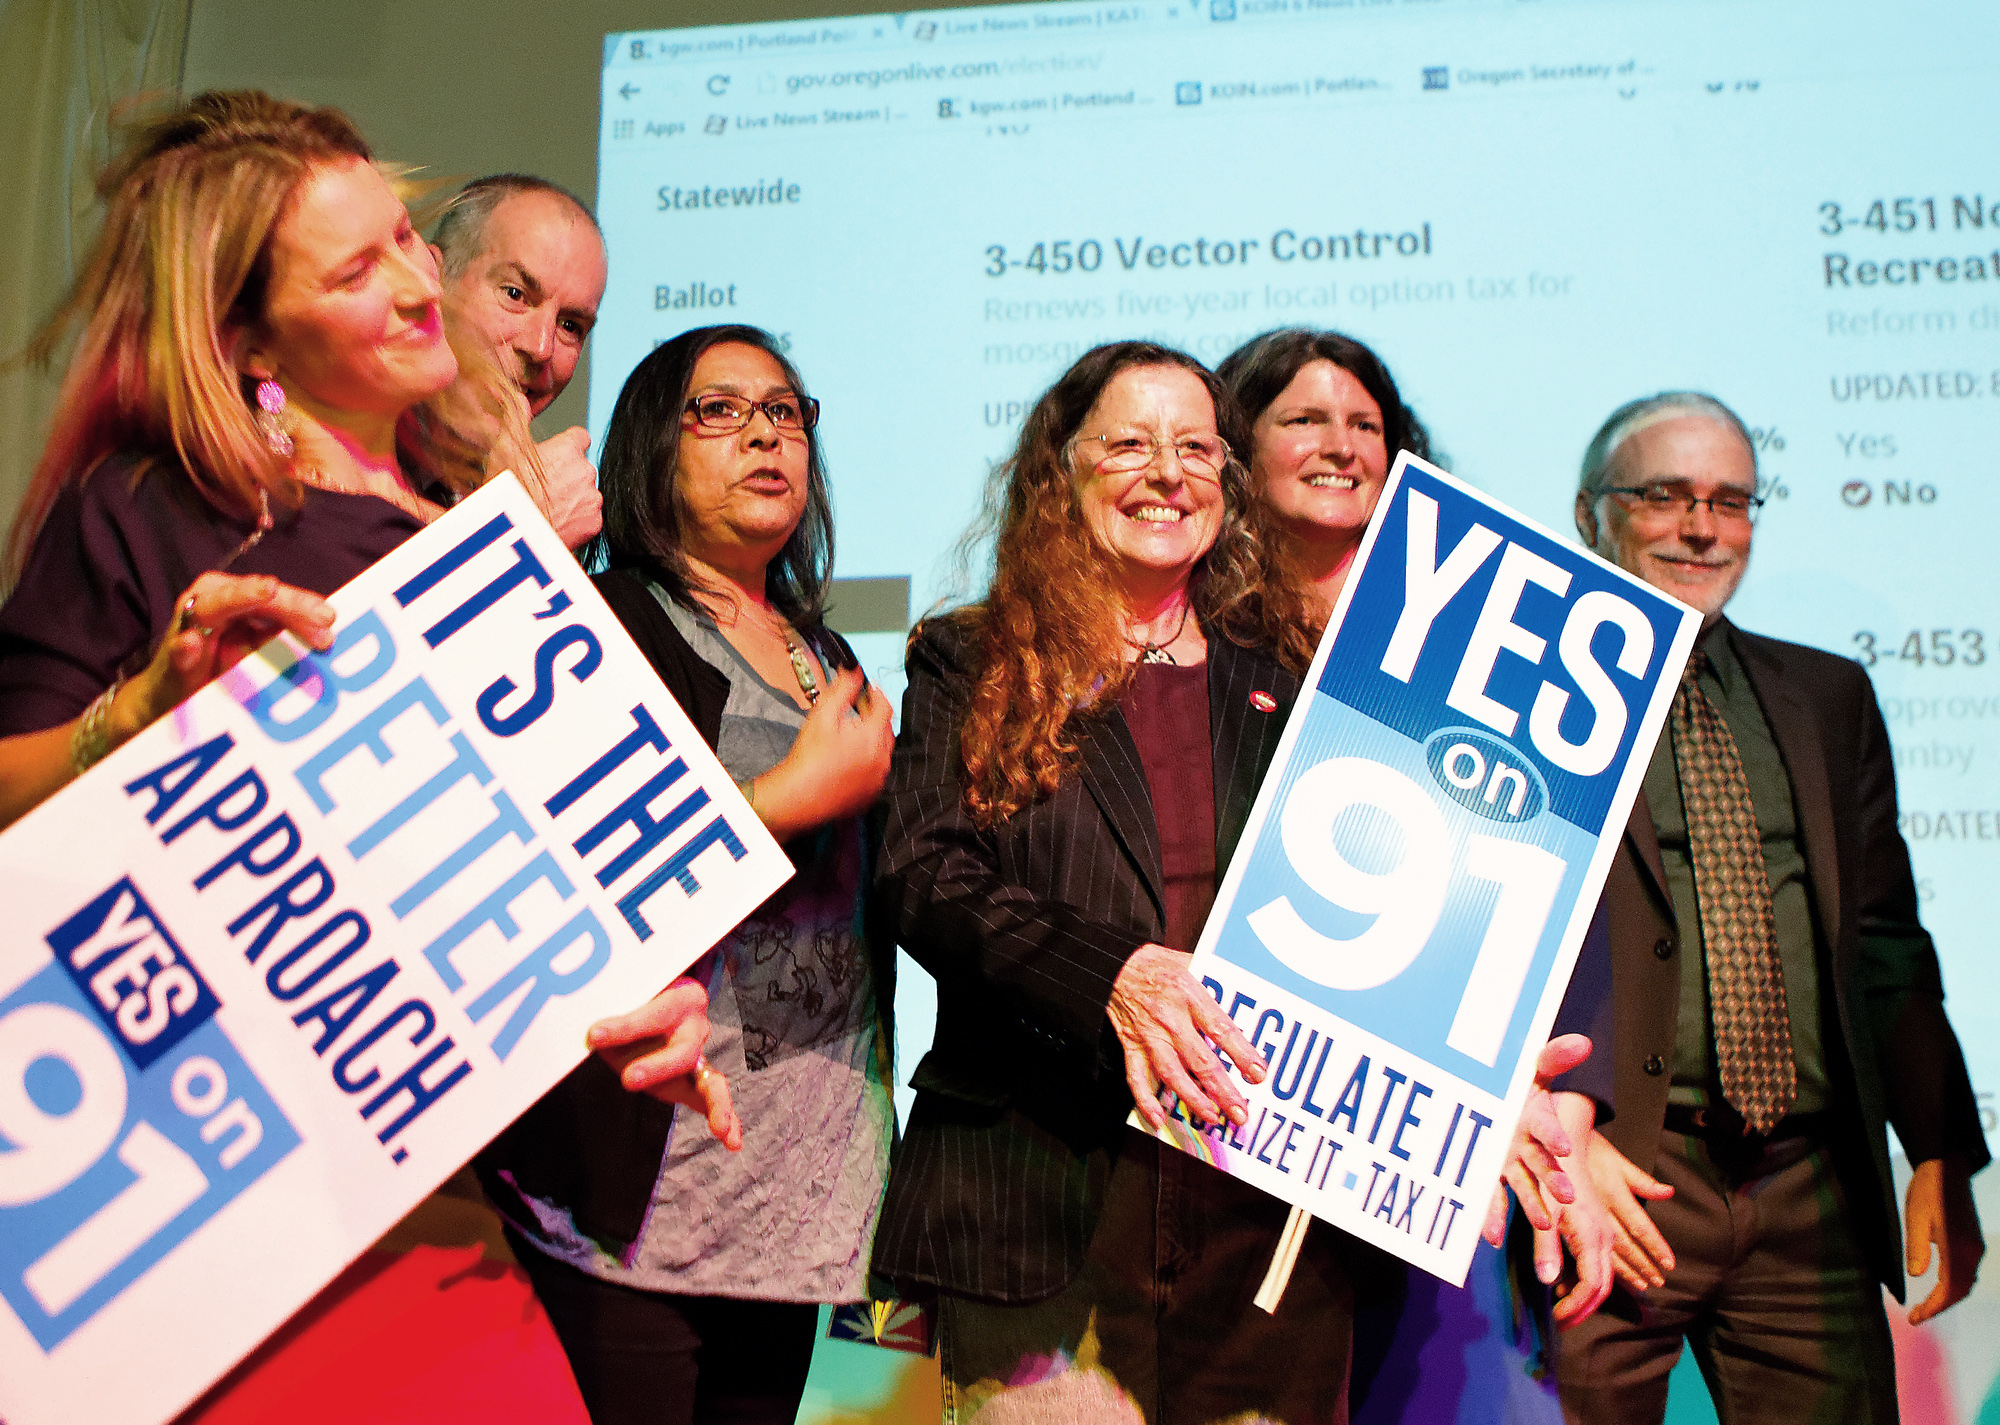 Supporters for the legalization of marijuana celebrate at the Measure 91 party at Holocene night club in Portland, Ore., on Tuesday, Nov. 4, 2014.